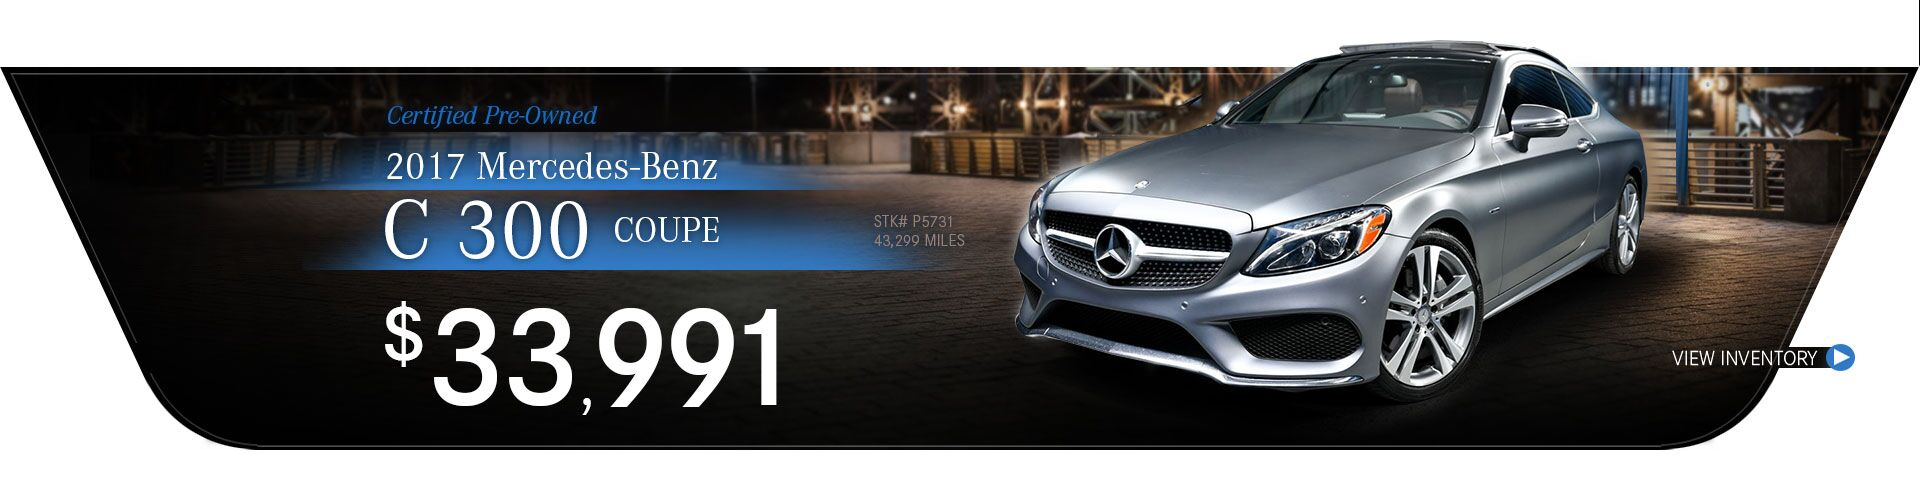 2017 Mercedes-Benz Certified Pre-Owned C 300 Coupe